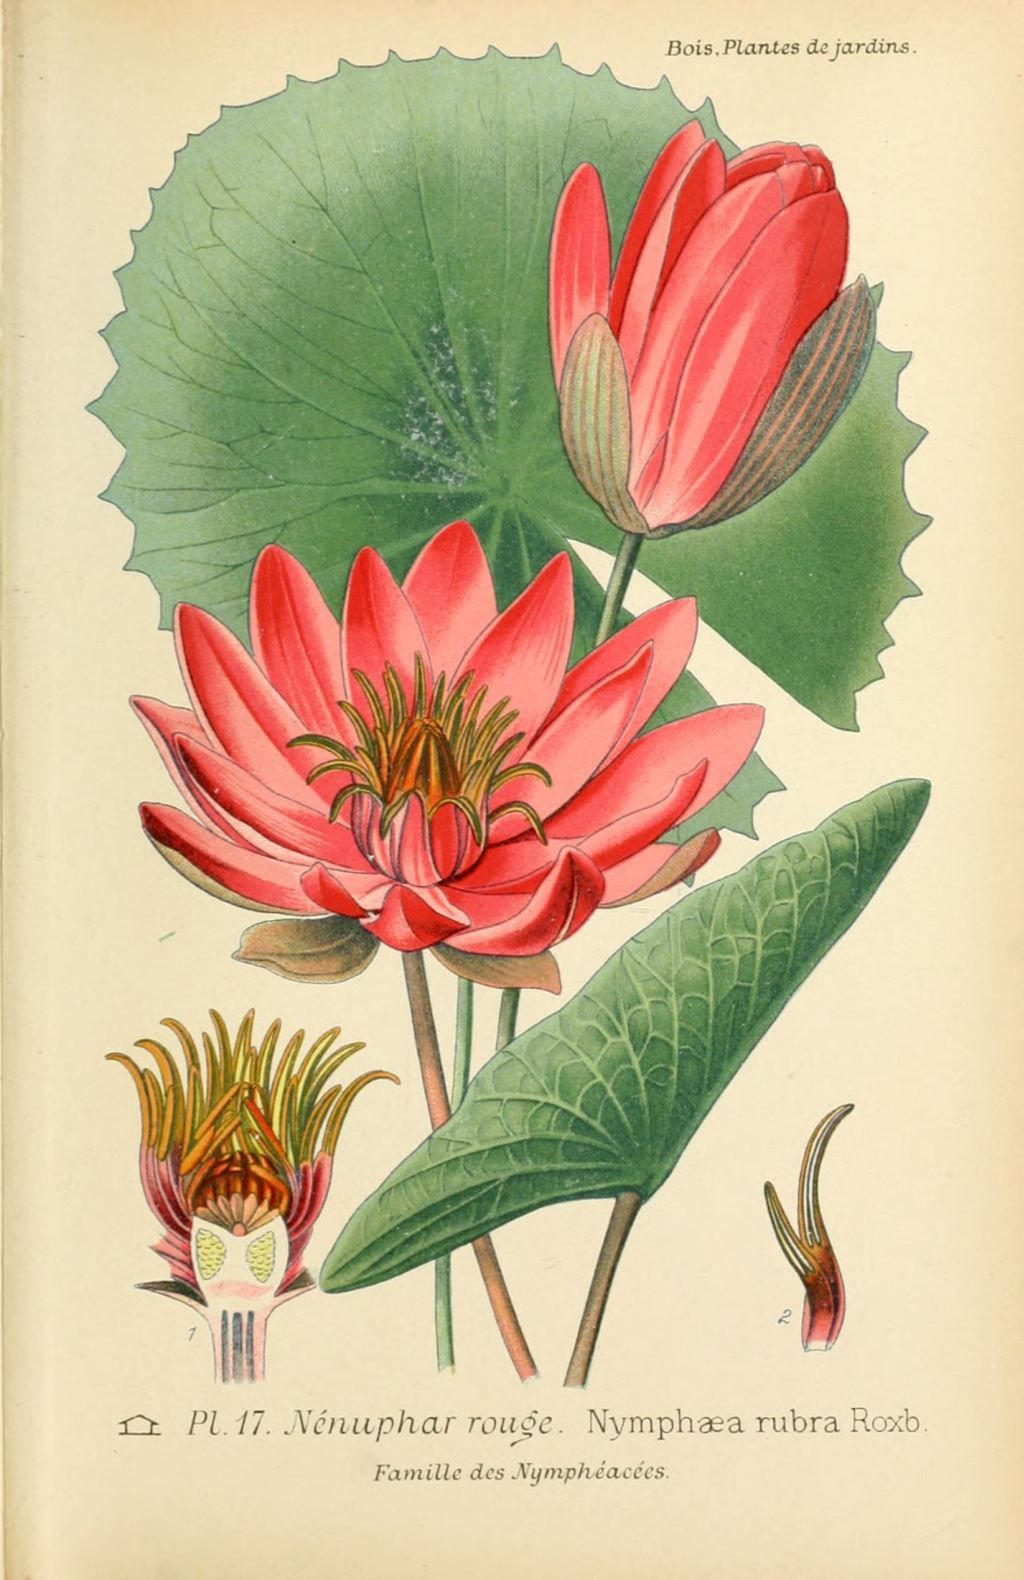 nenuphar rouge nymphea rubra dessin gravure de fleur d 39 apr s atlas des plantes de jardins et. Black Bedroom Furniture Sets. Home Design Ideas